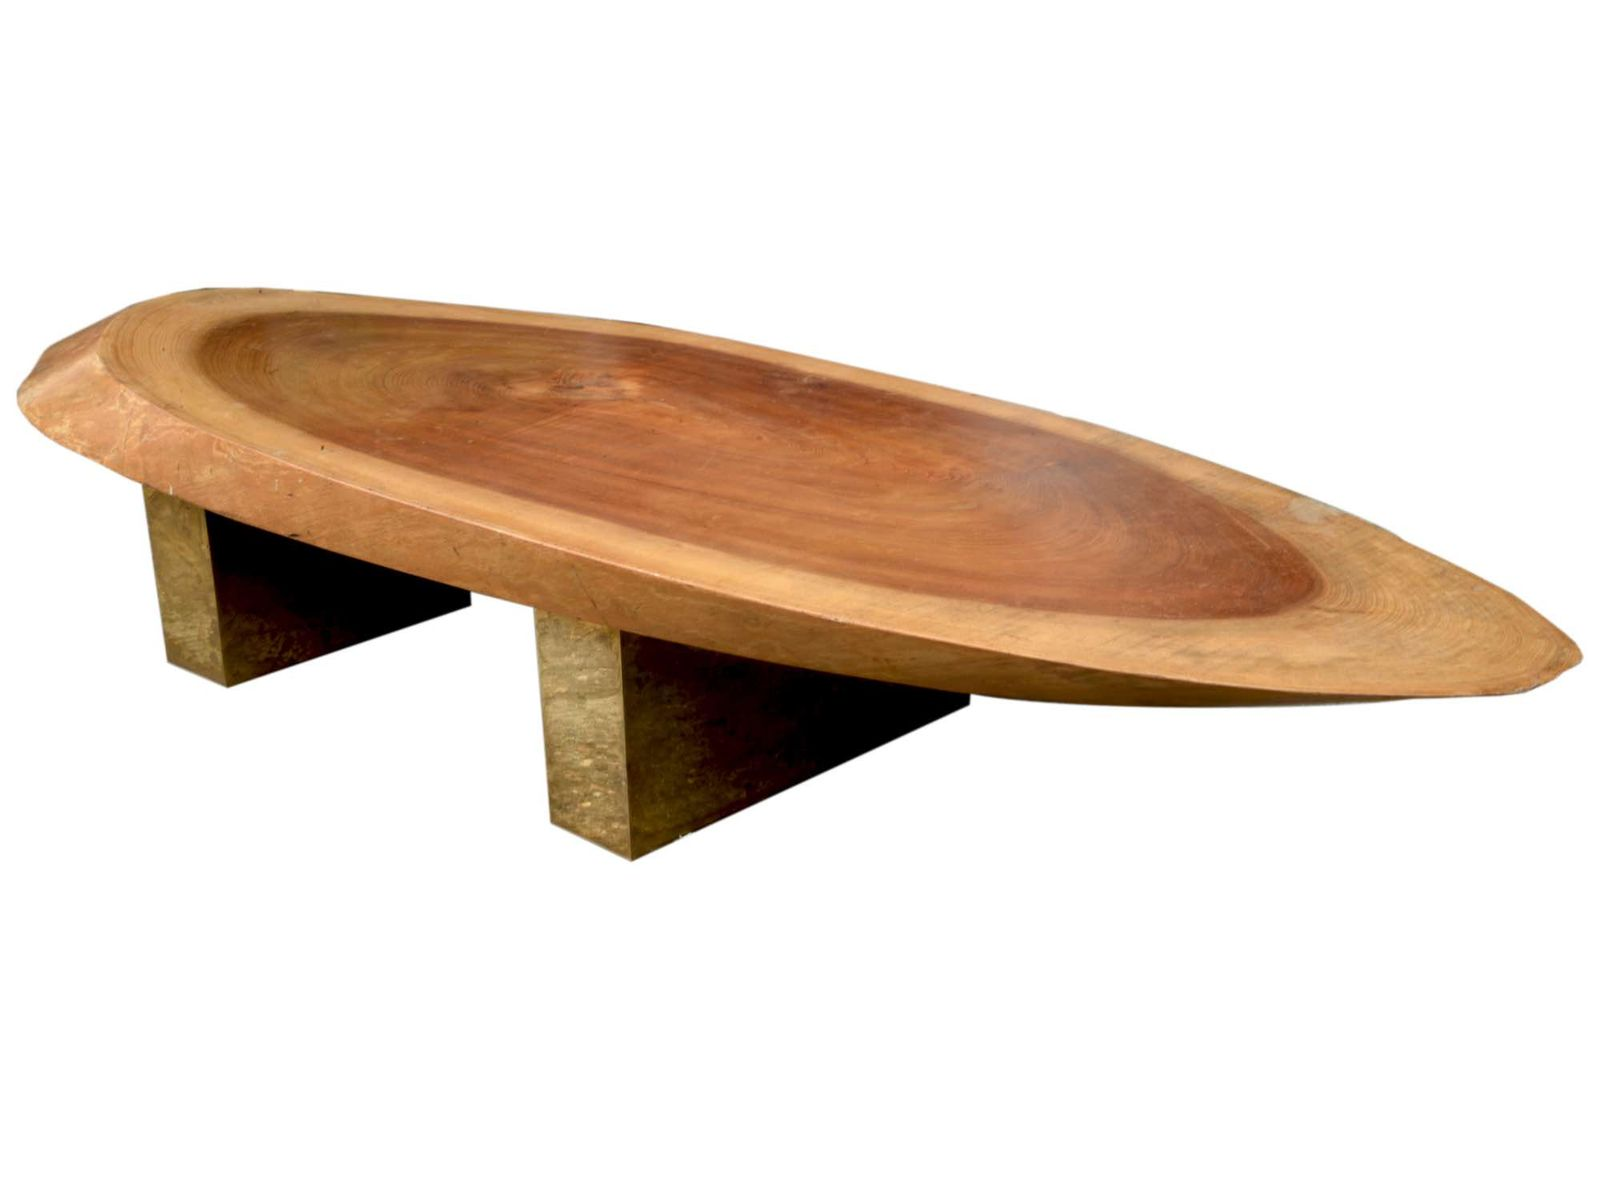 Italian Natural Wooden Coffee Table 1970s for sale at Pamono